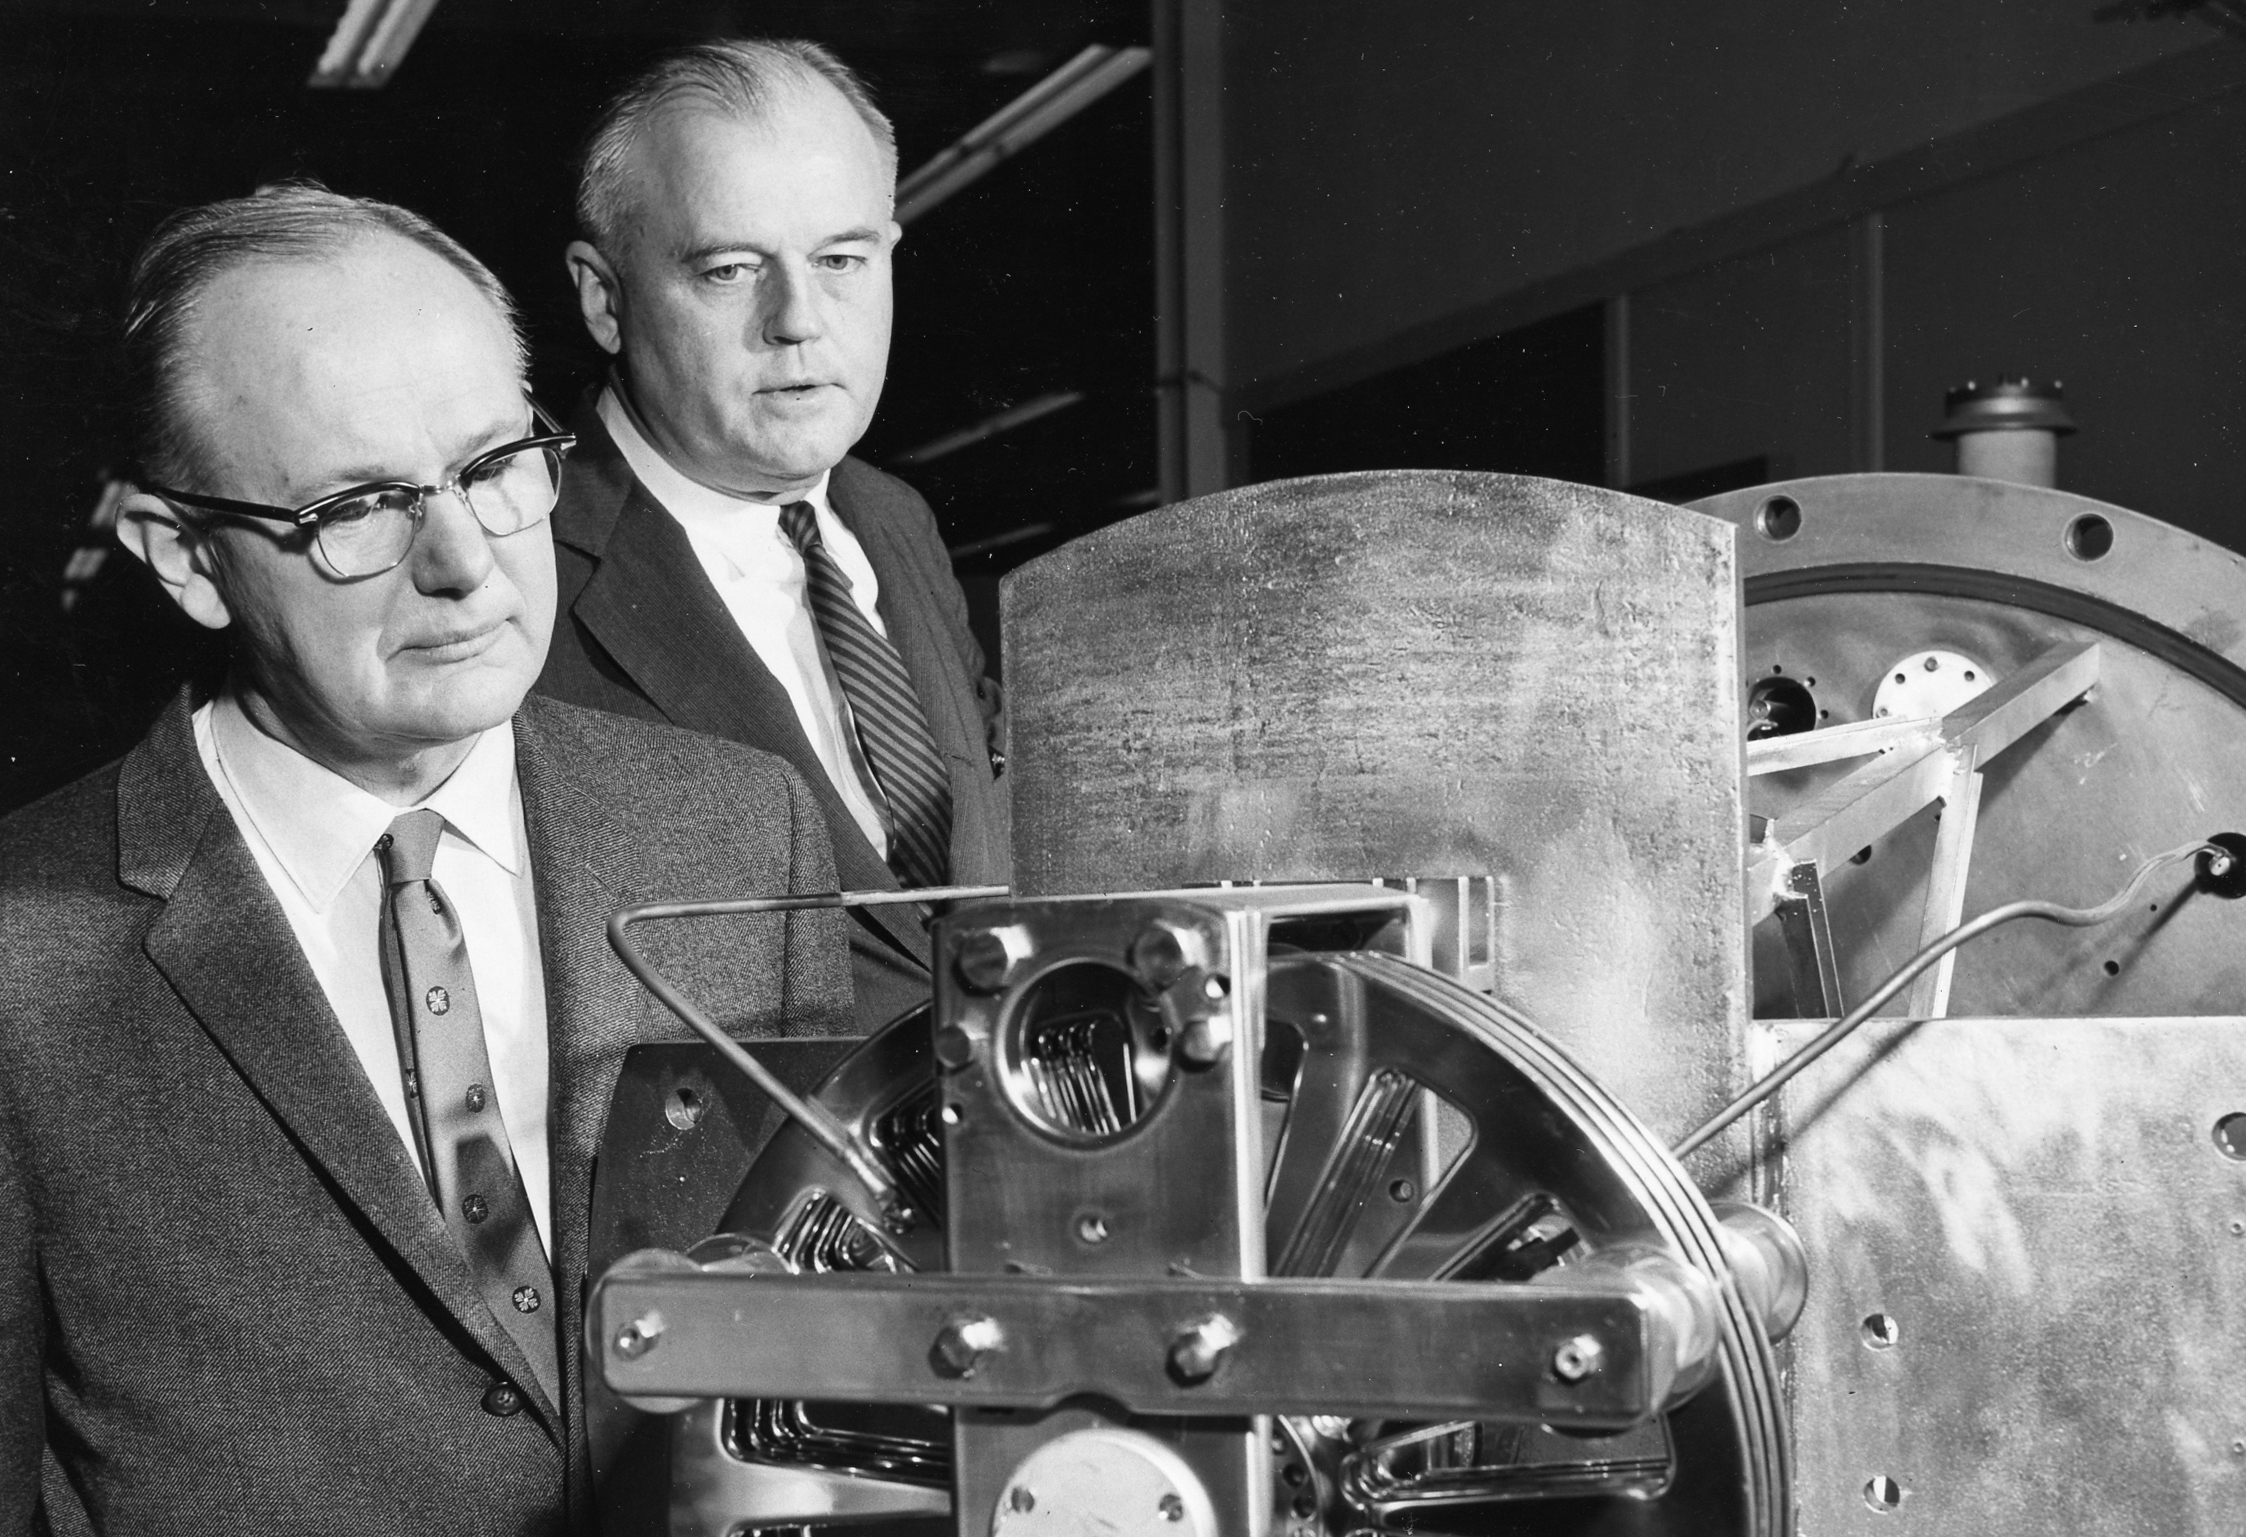 Black and white photo of two men looking at a machine